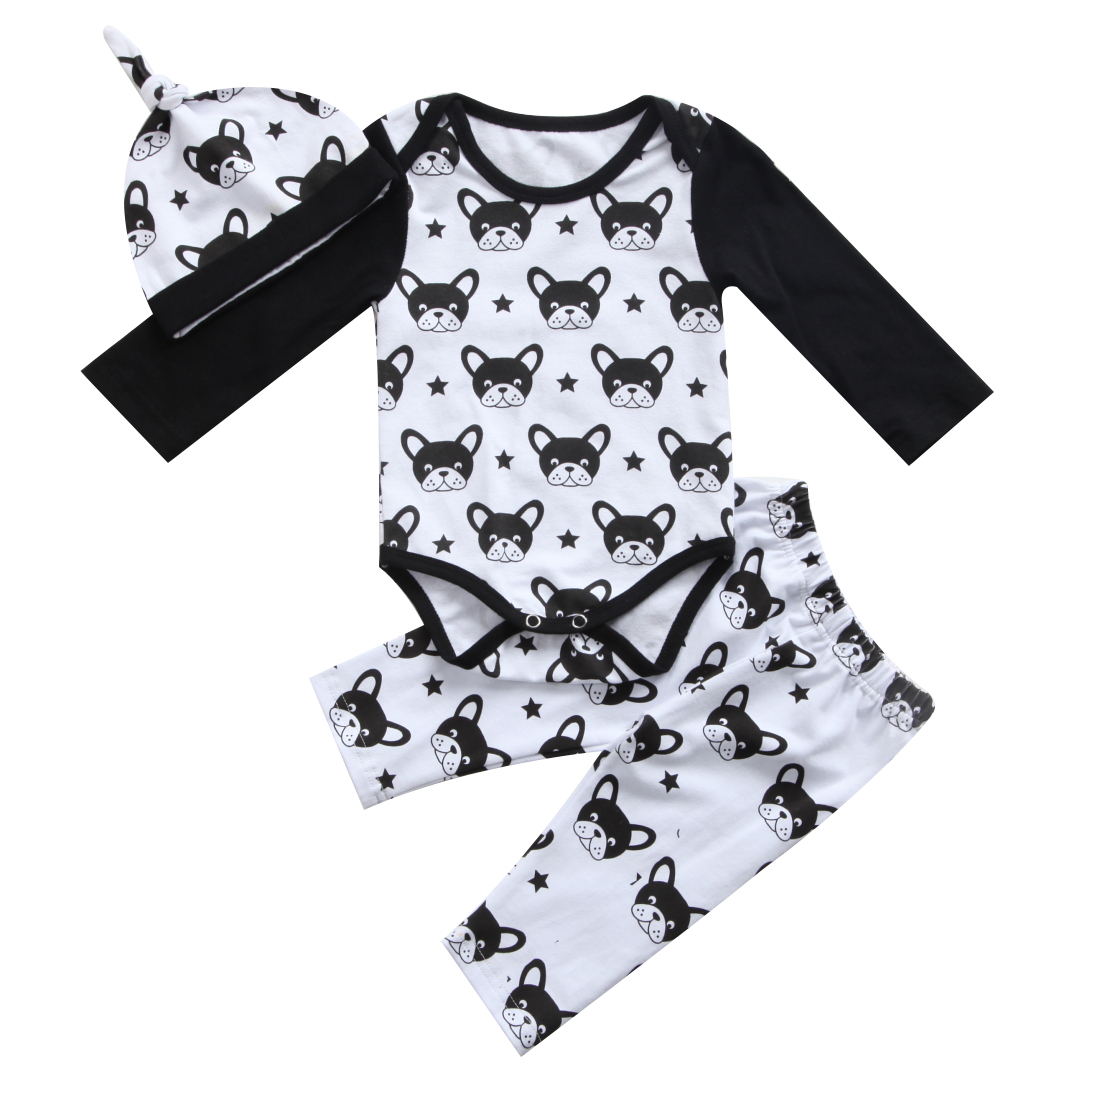 Cute Newborn Baby Boys Girl Dog Animal Clothes Set Long Sleeve Romper+Long Pants Hat Autumn Spring Clothes Outfits he hello enjoy baby rompers long sleeve cotton baby infant autumn animal newborn baby clothes romper hat pants 3pcs clothing set